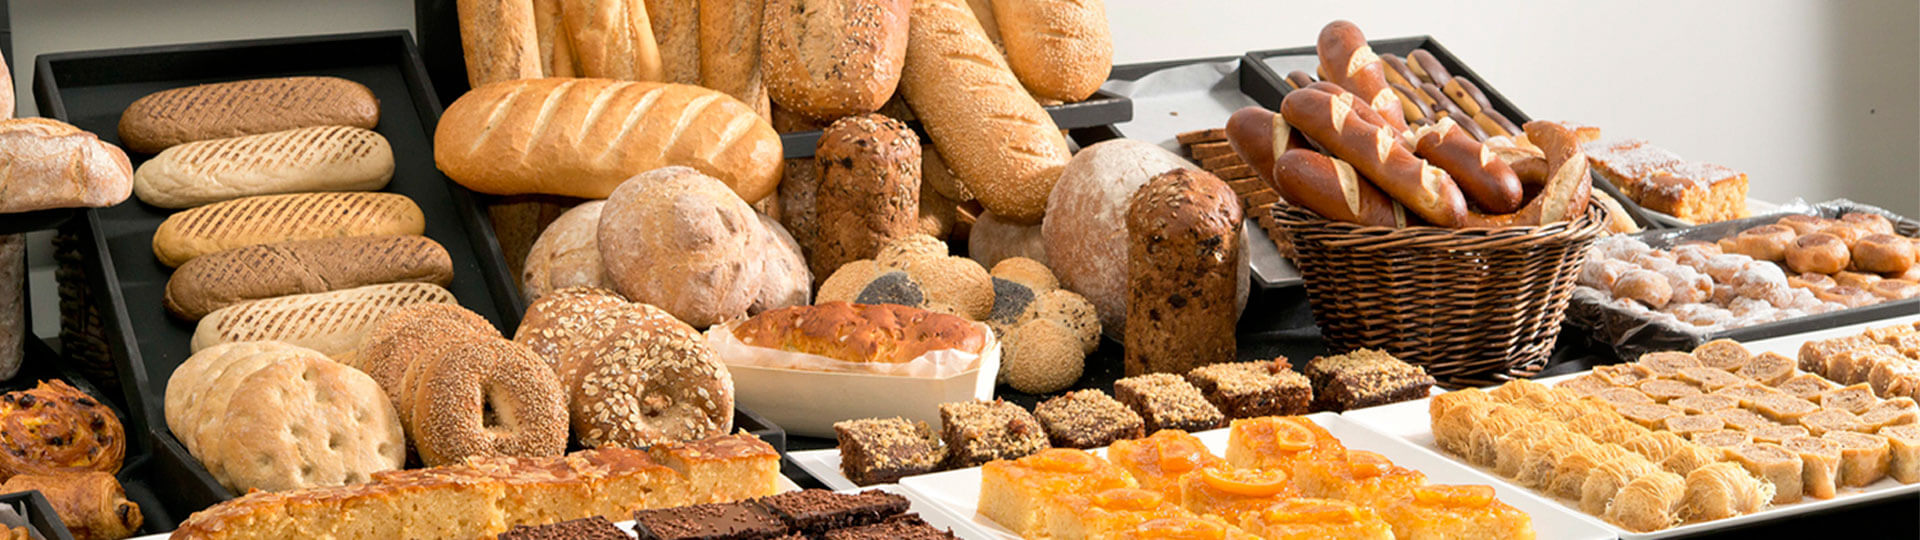 BakeArt: more than 200 different items